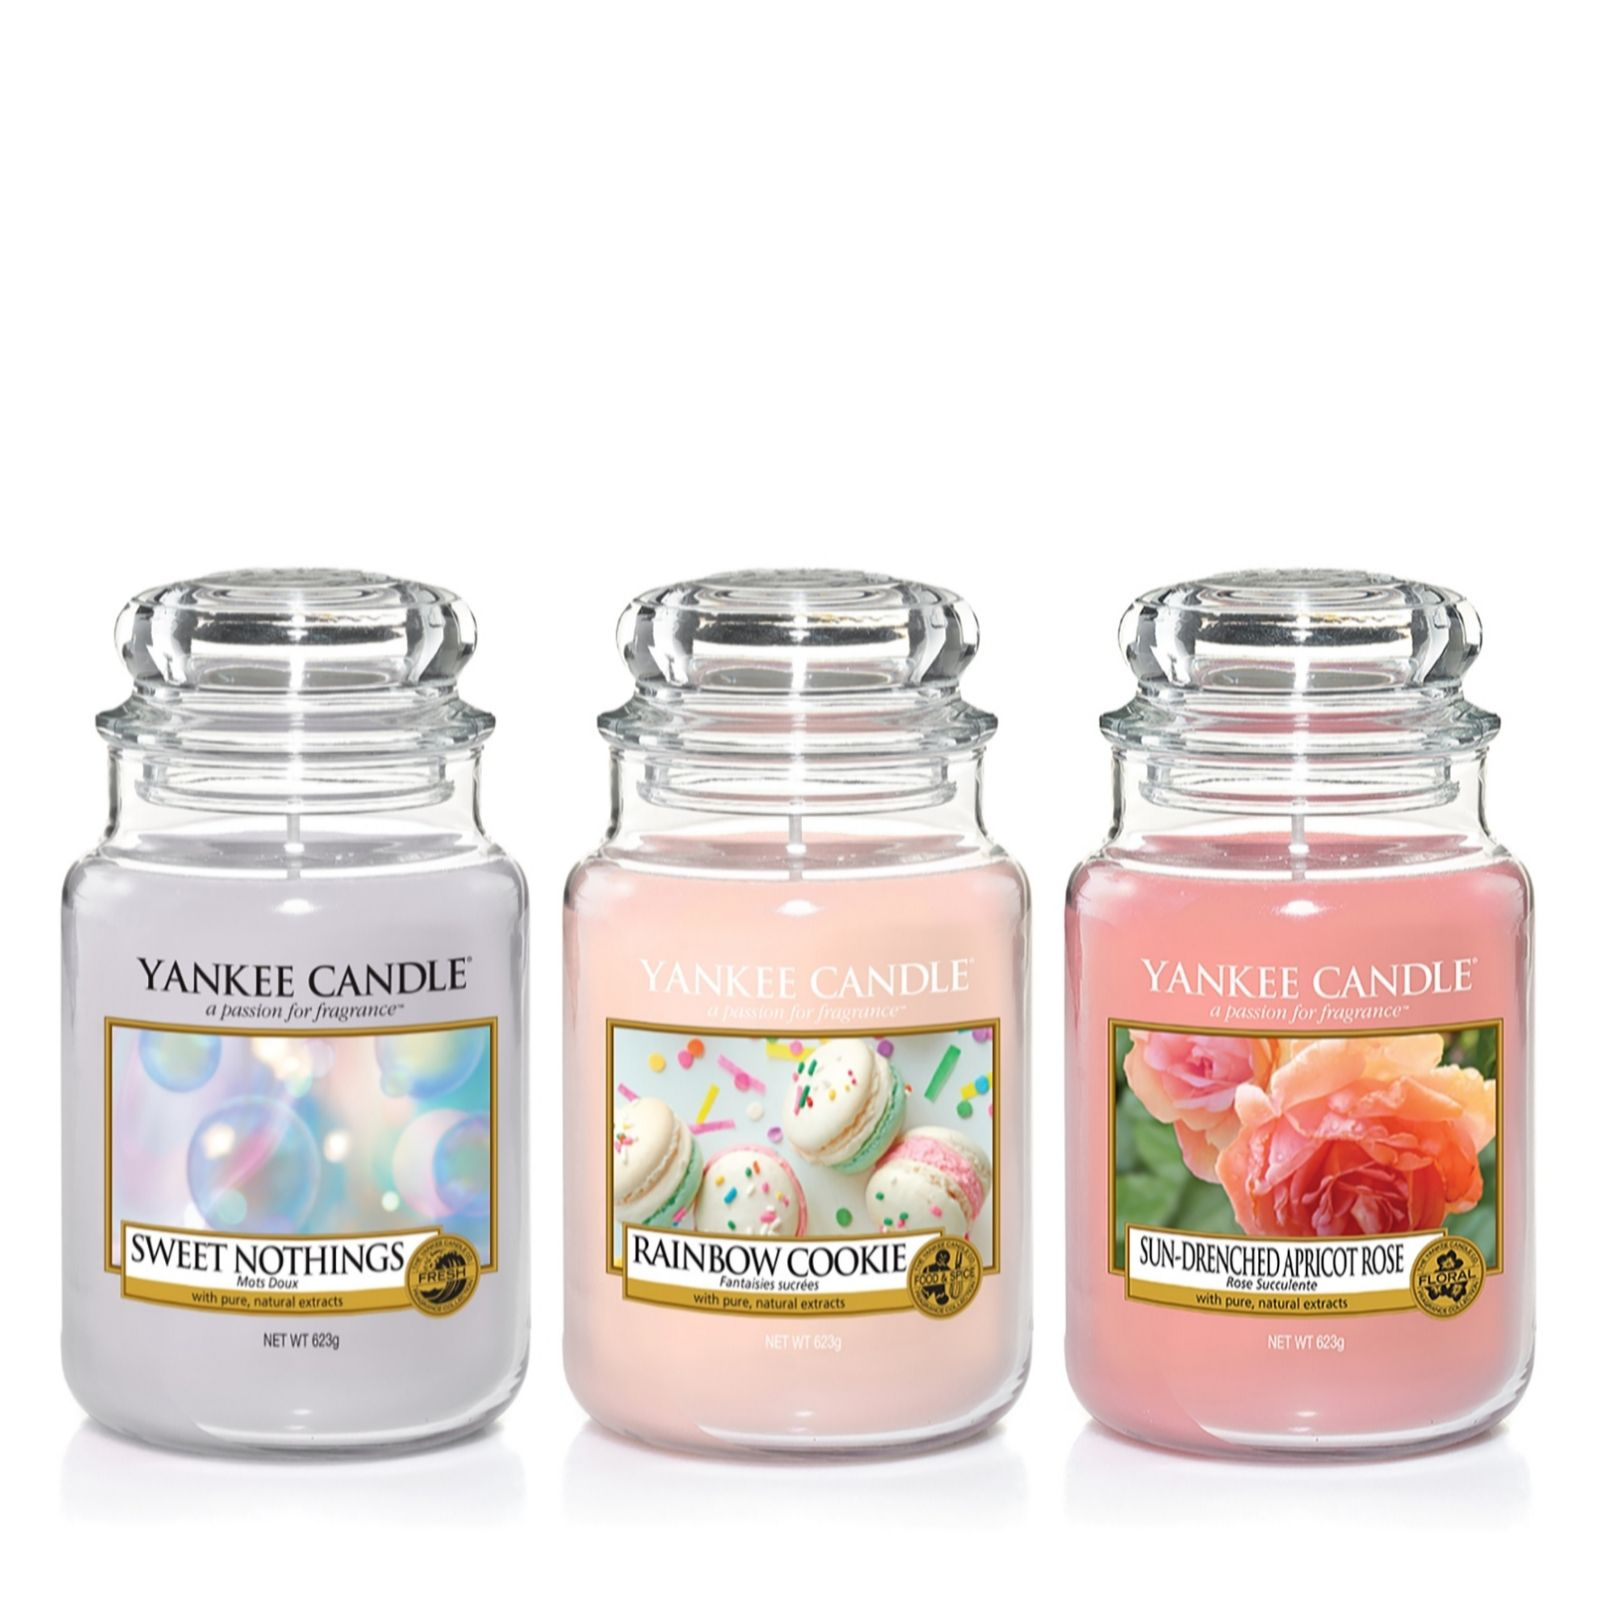 Yankee Candle Enjoy The Simple Things Set Of 3 Large Jars